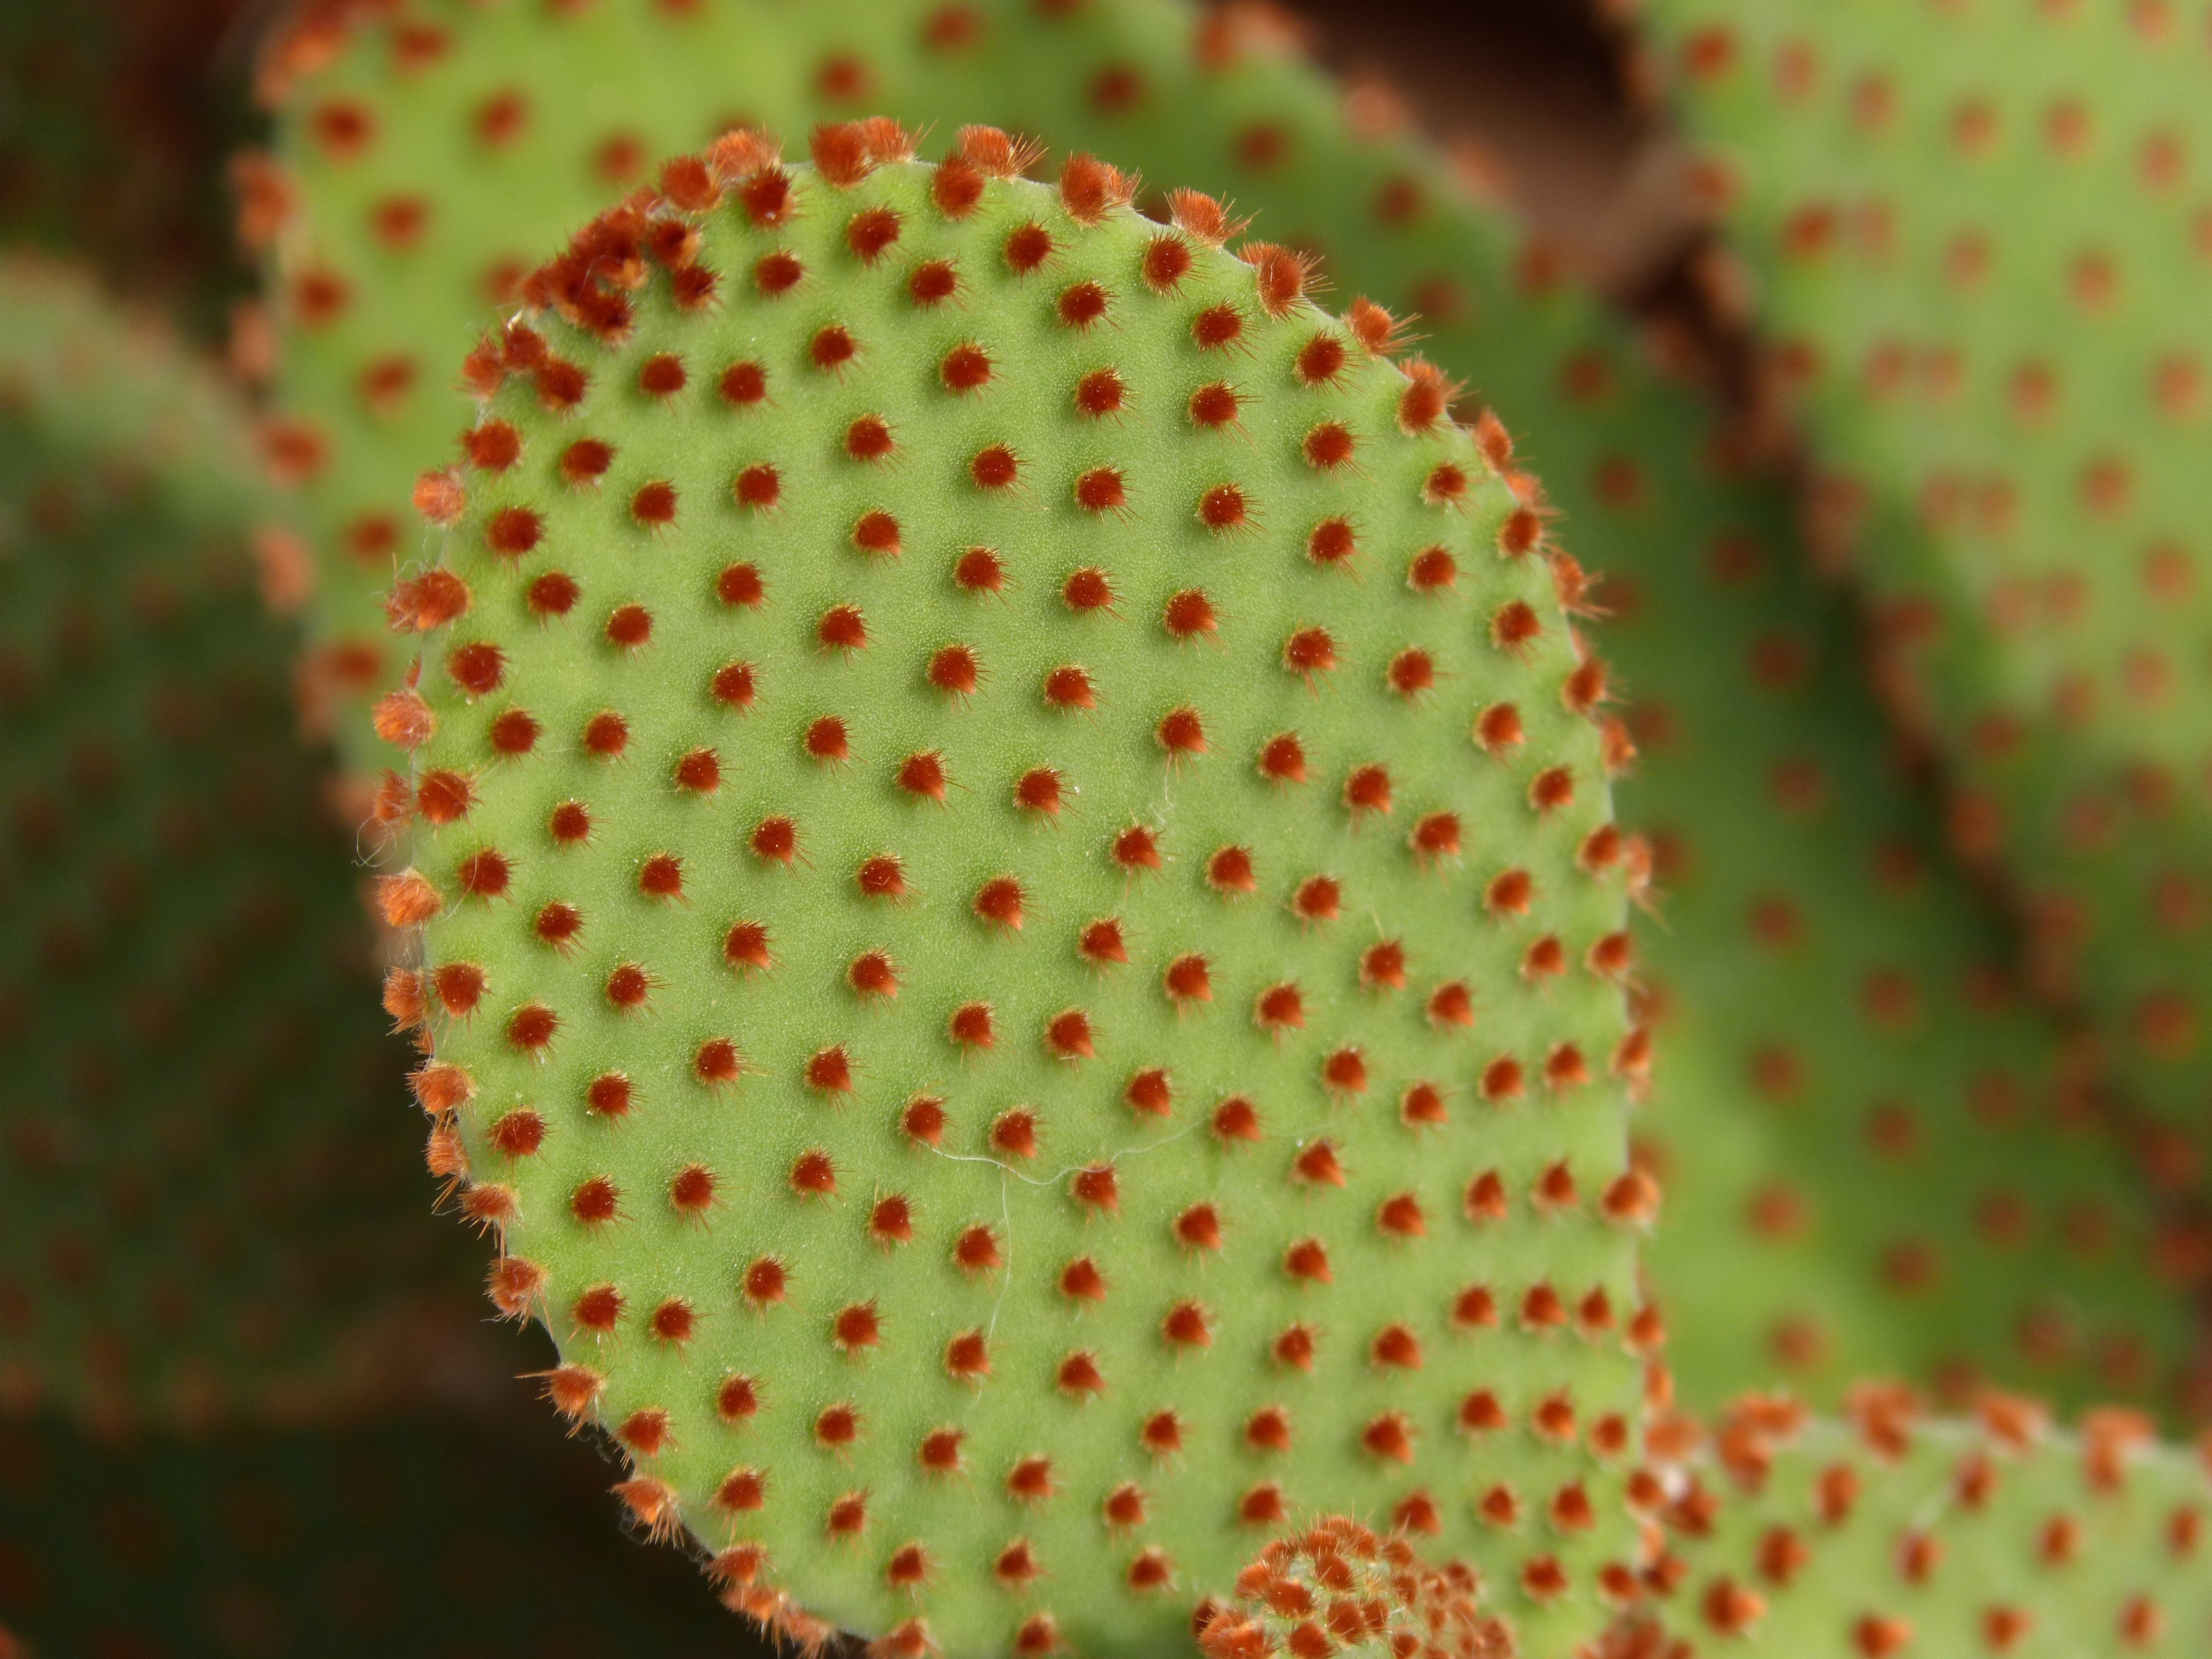 Macro Photography of Green and Red Leaf Plant